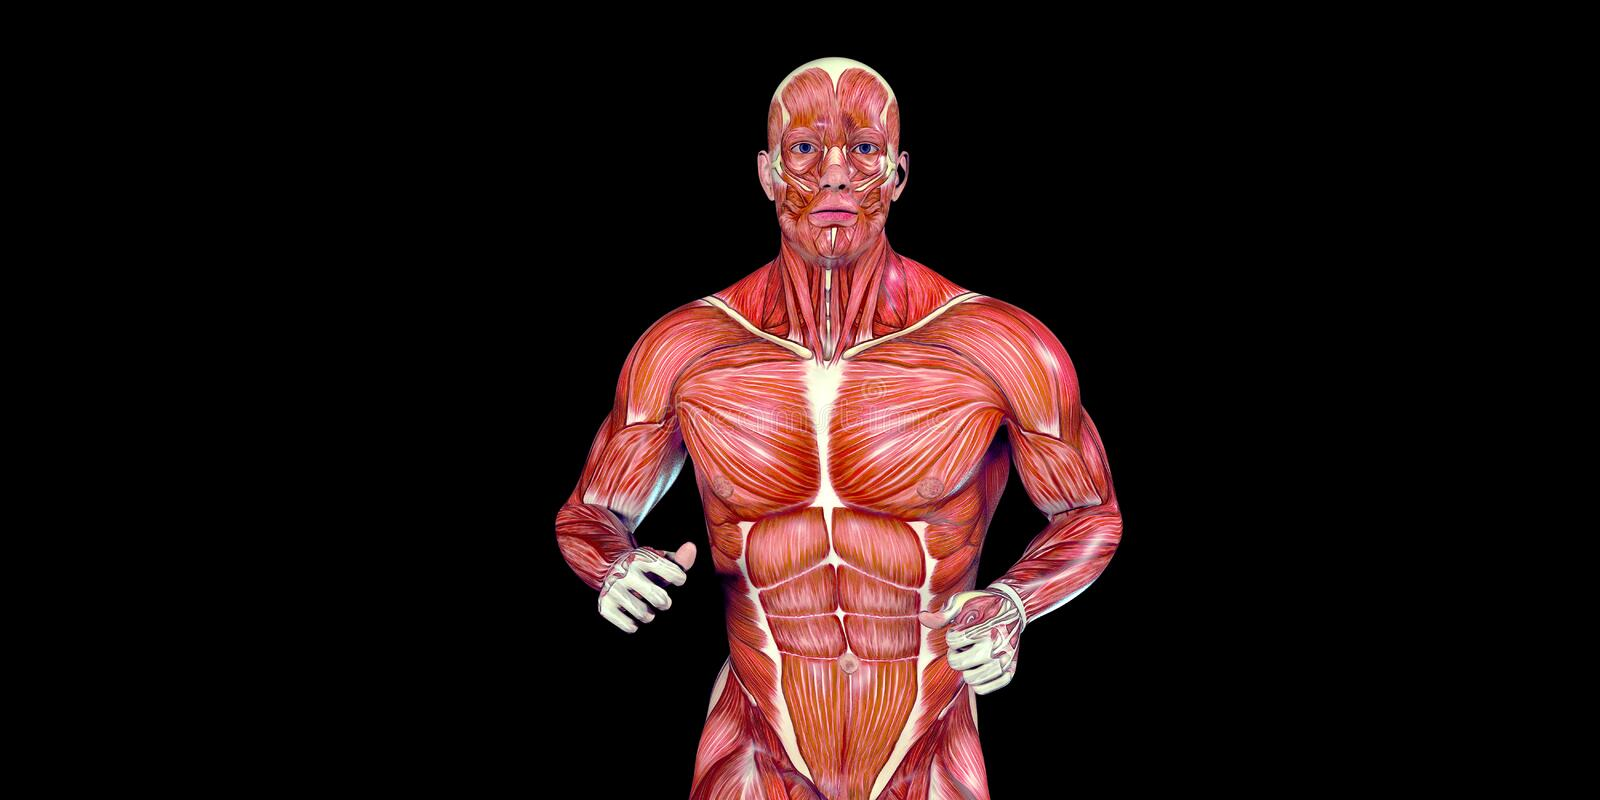 Human Male Body Anatomy Illustration of a human torso with visible muscles vector illustration